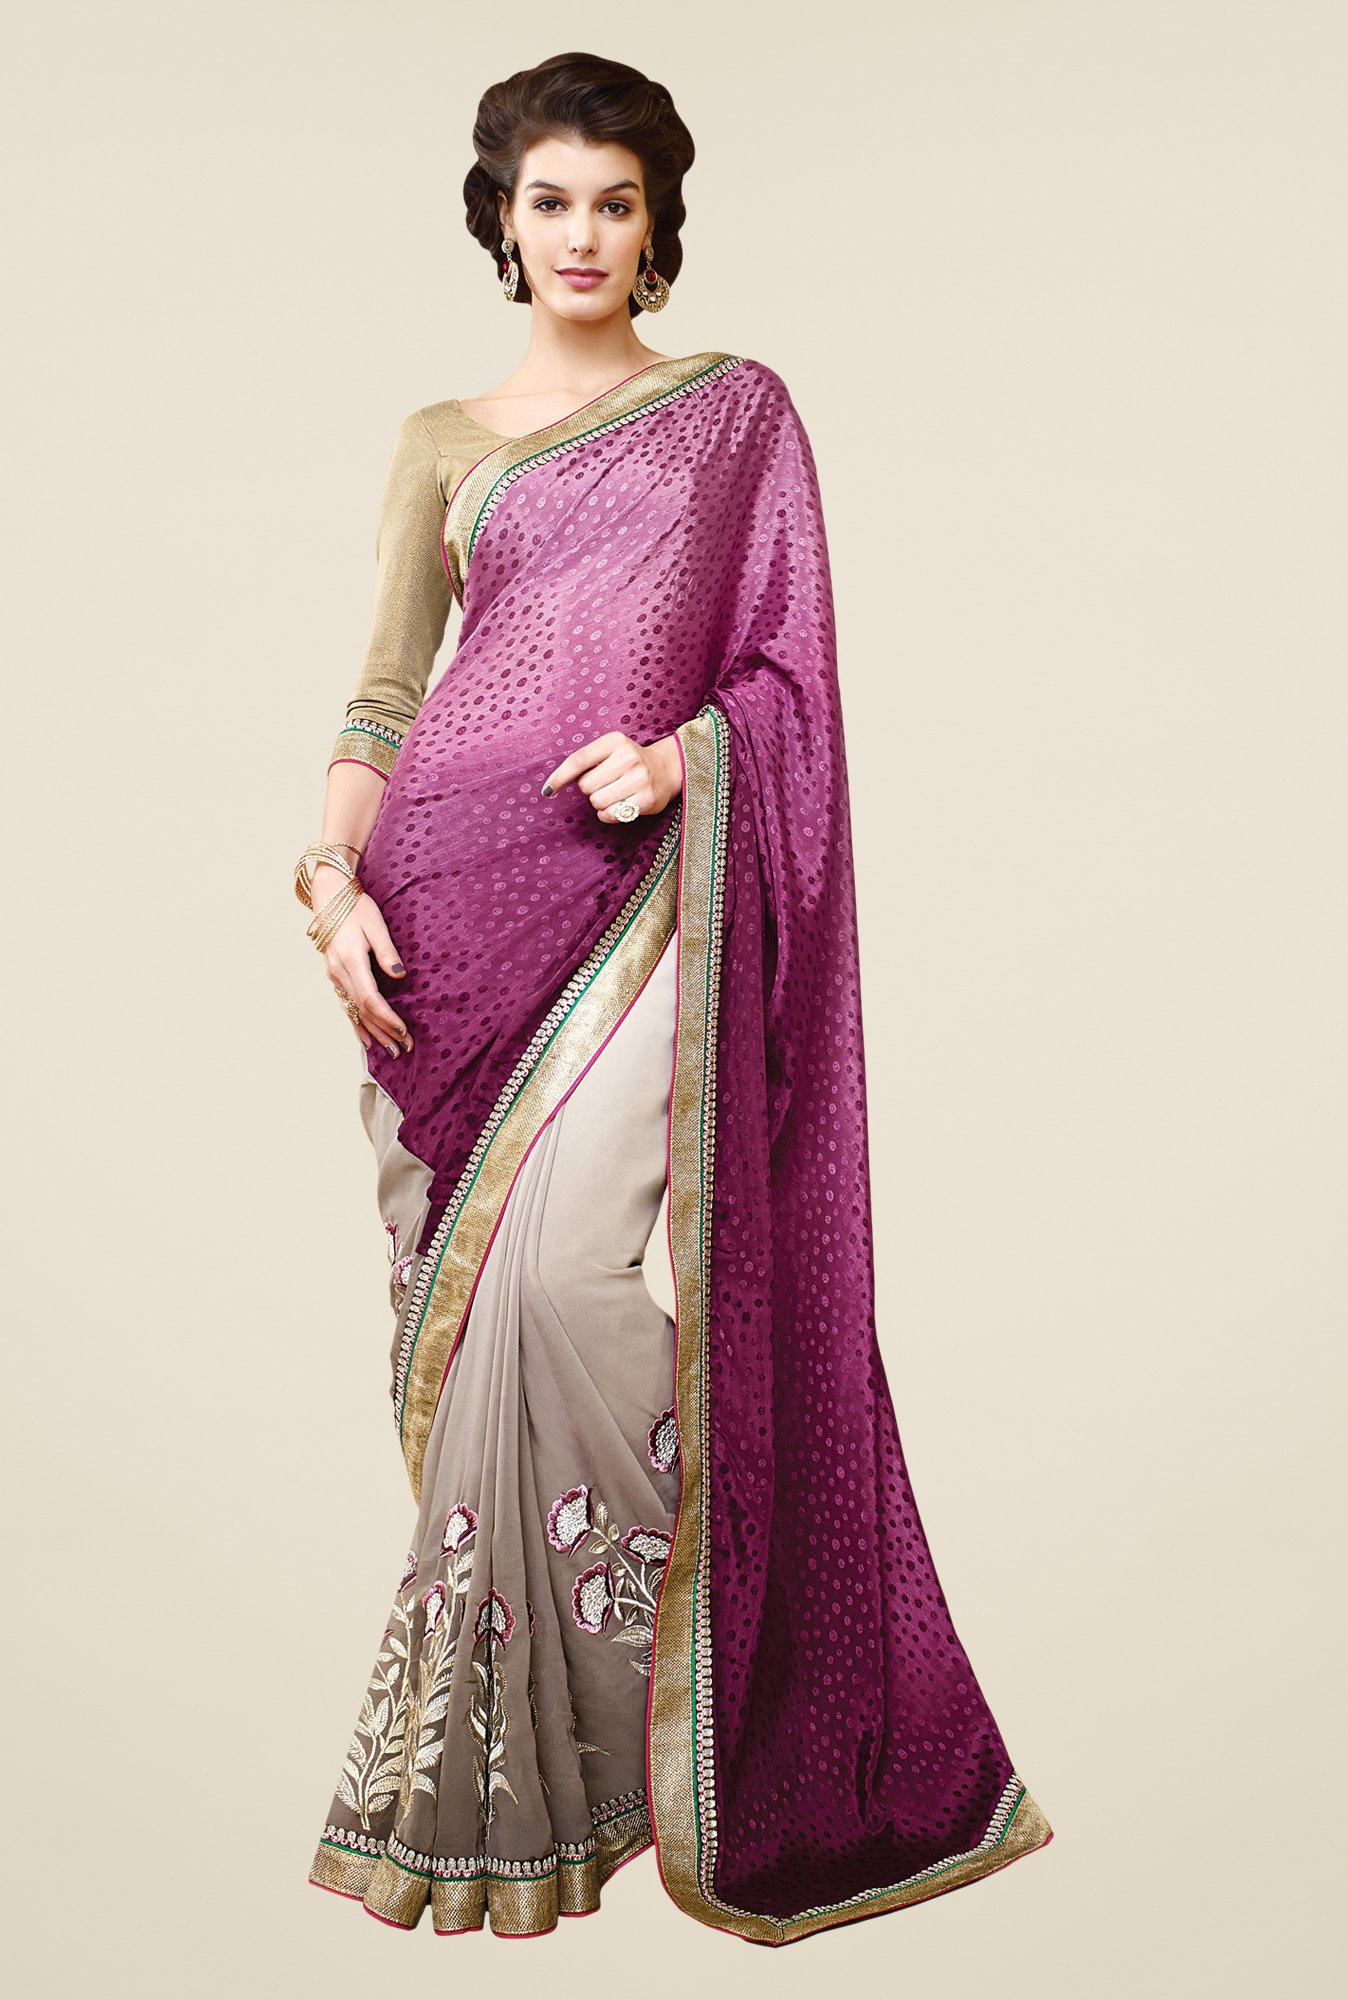 Shonaya Purple & Beige Faux Georgette Printed Saree